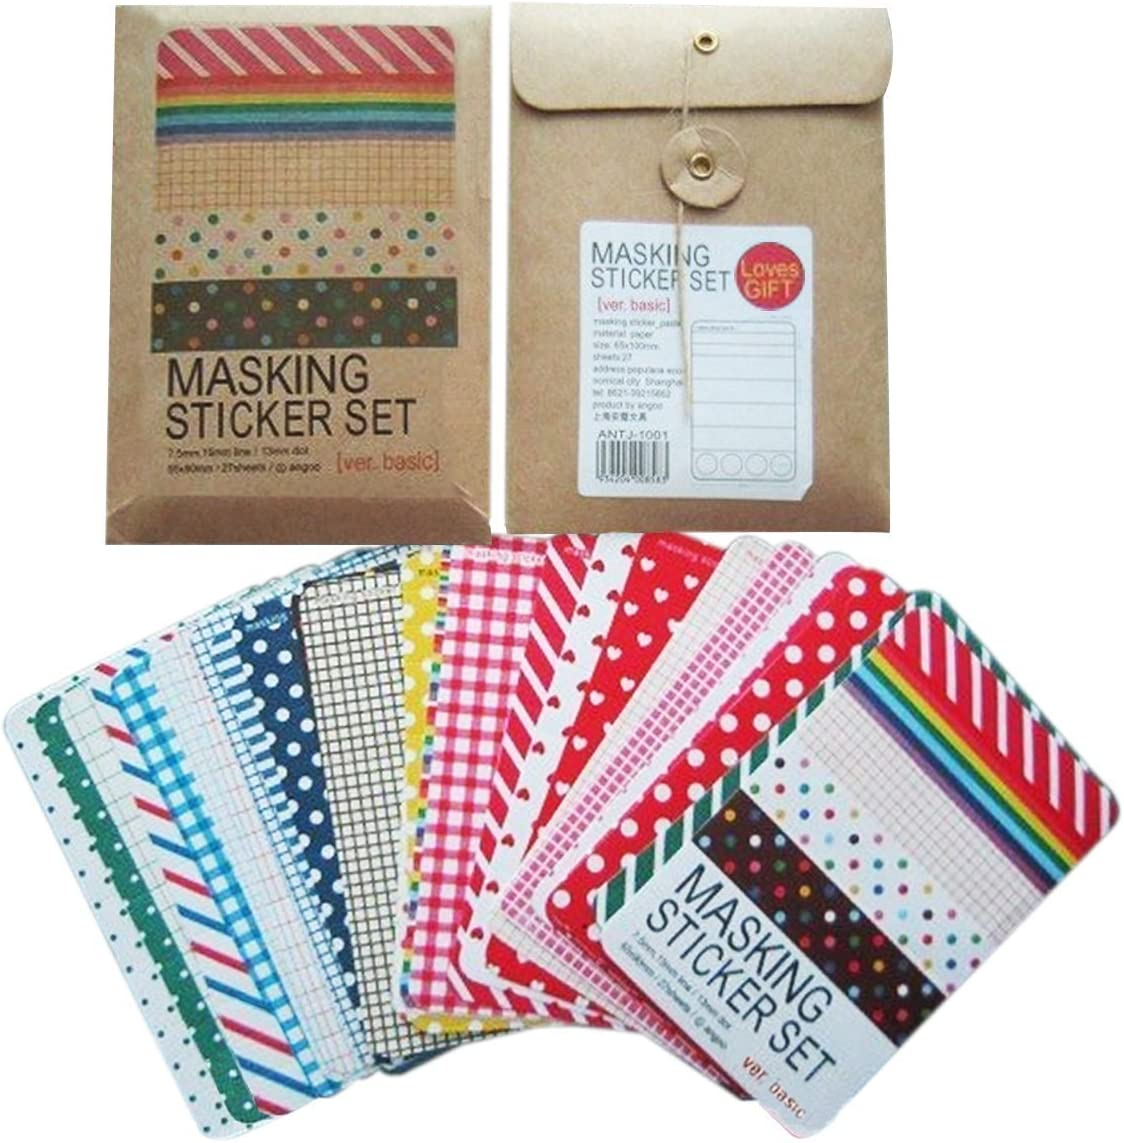 27 Sheets Masking Sticker Washi Tape Spots Stripe Scrapbooking Journalling Set